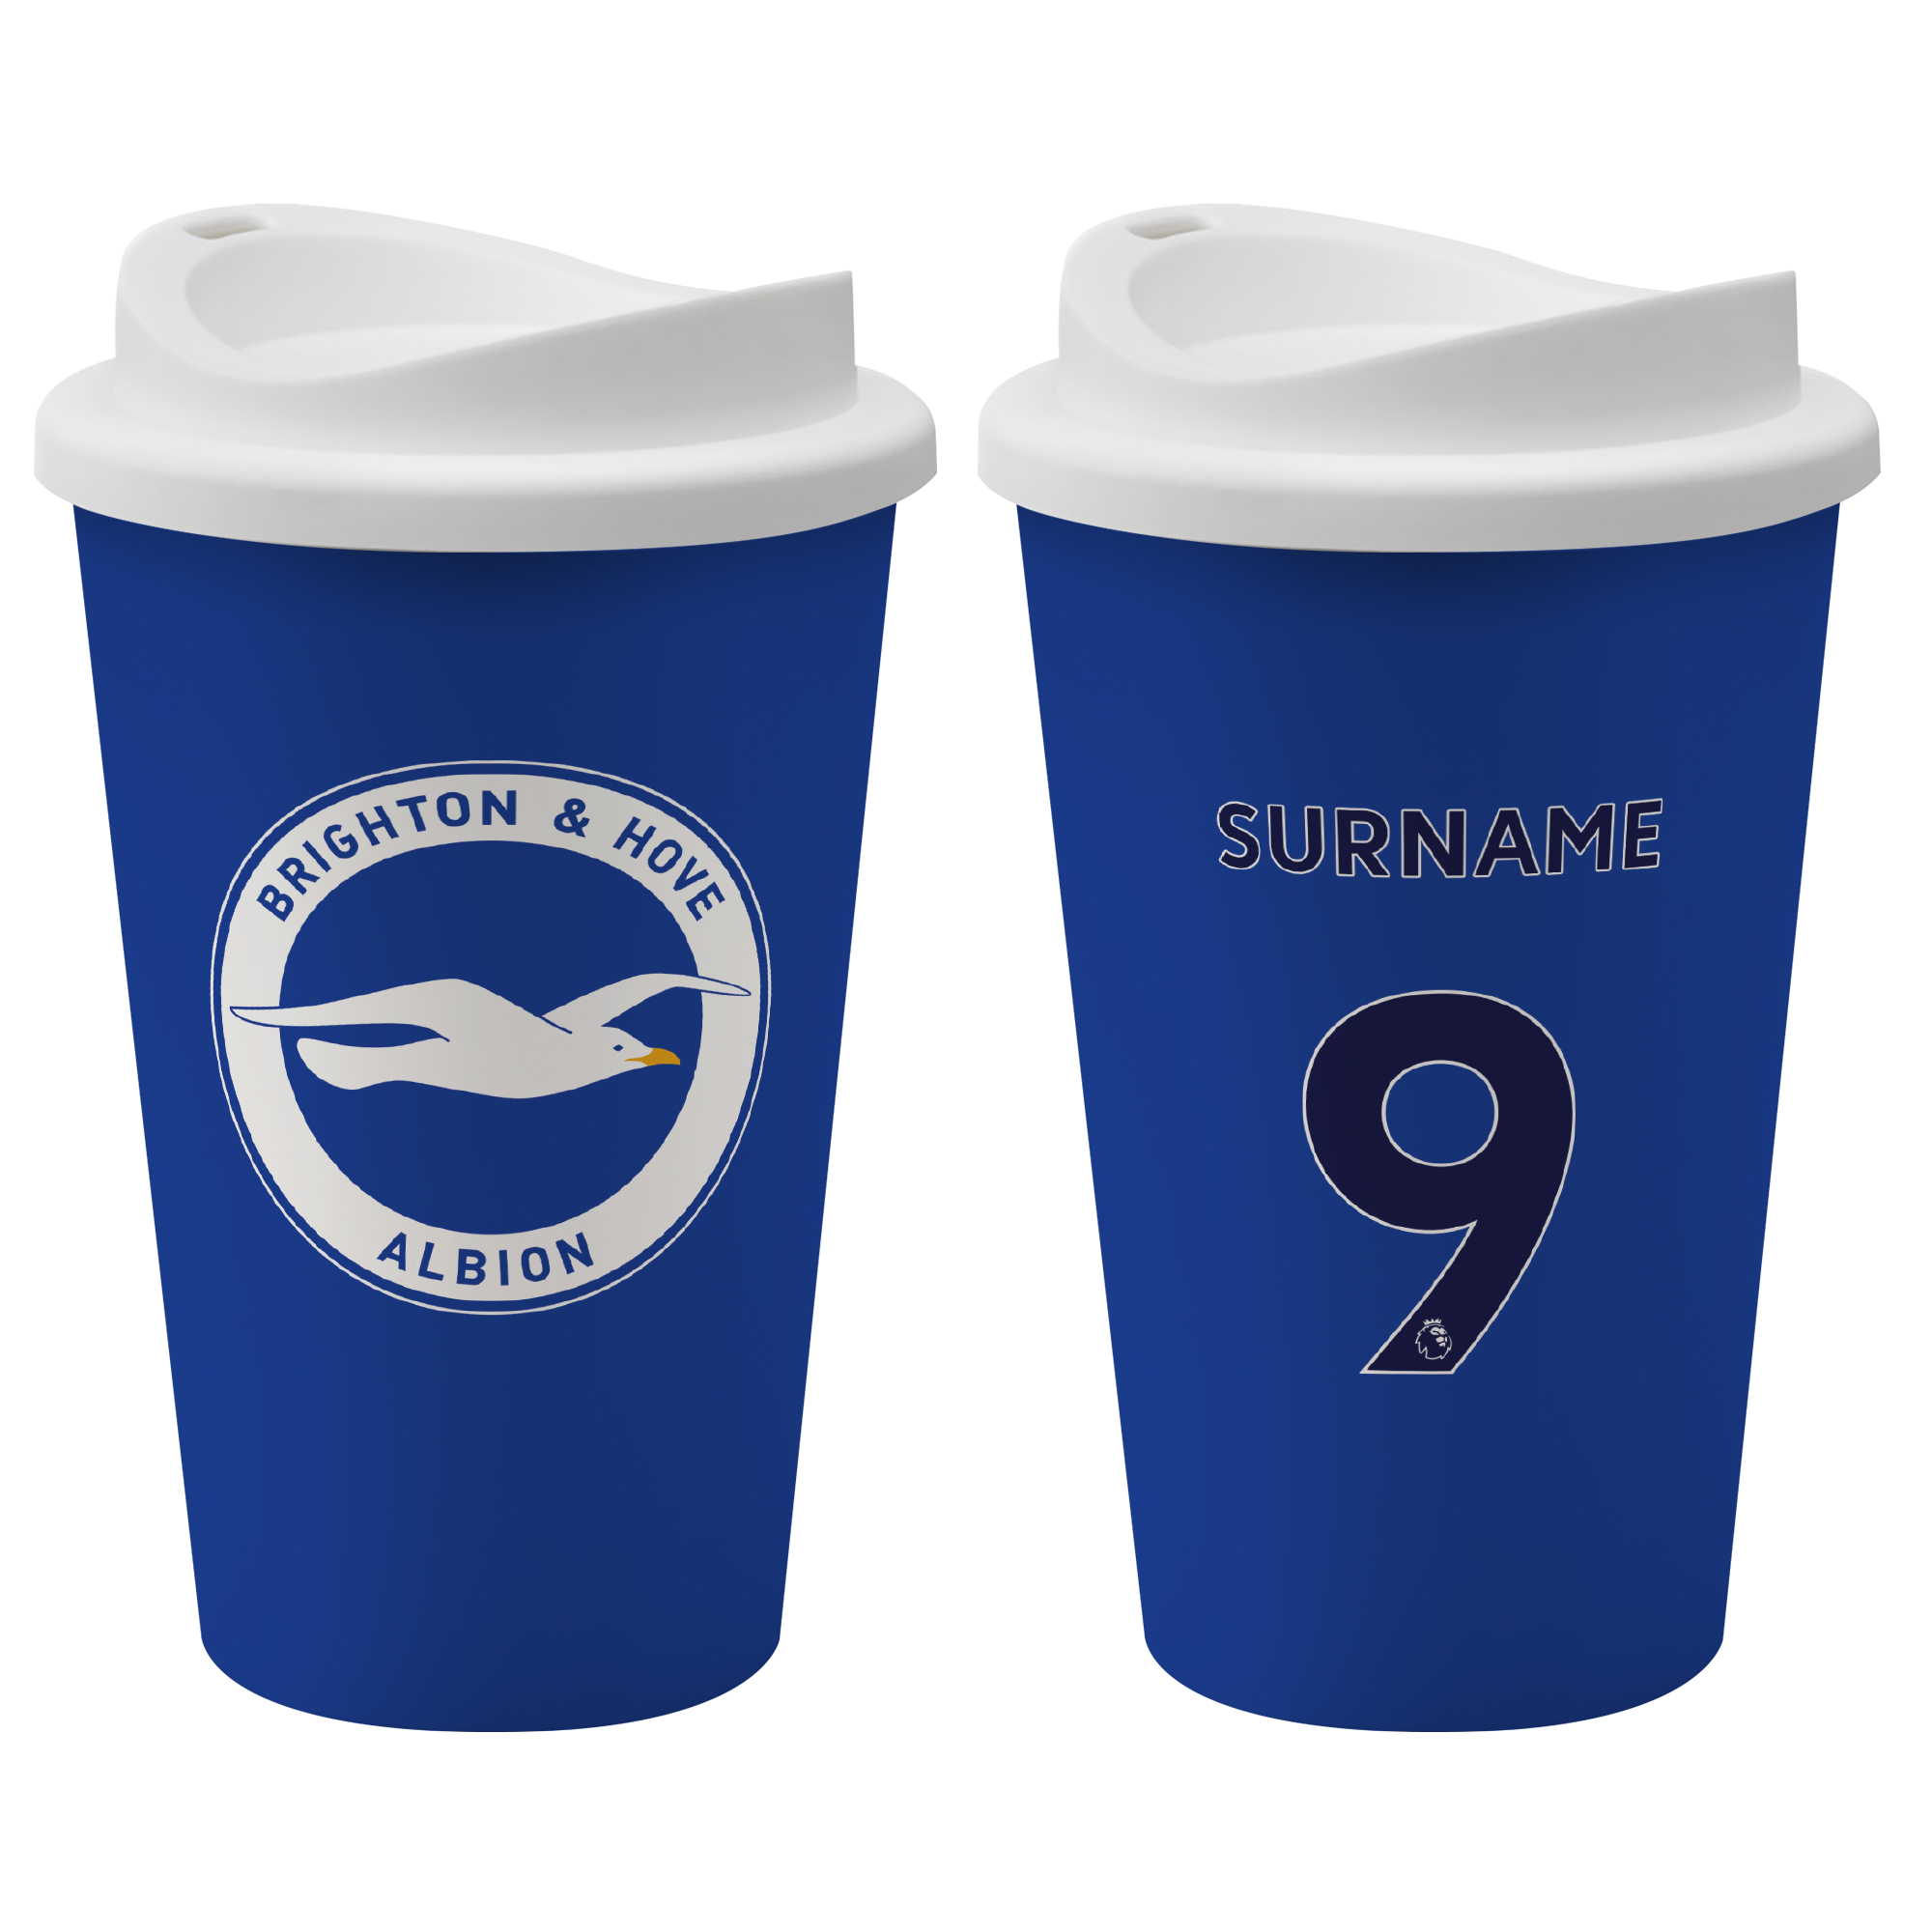 Brighton & Hove Albion FC Back of Shirt Reusable Cup